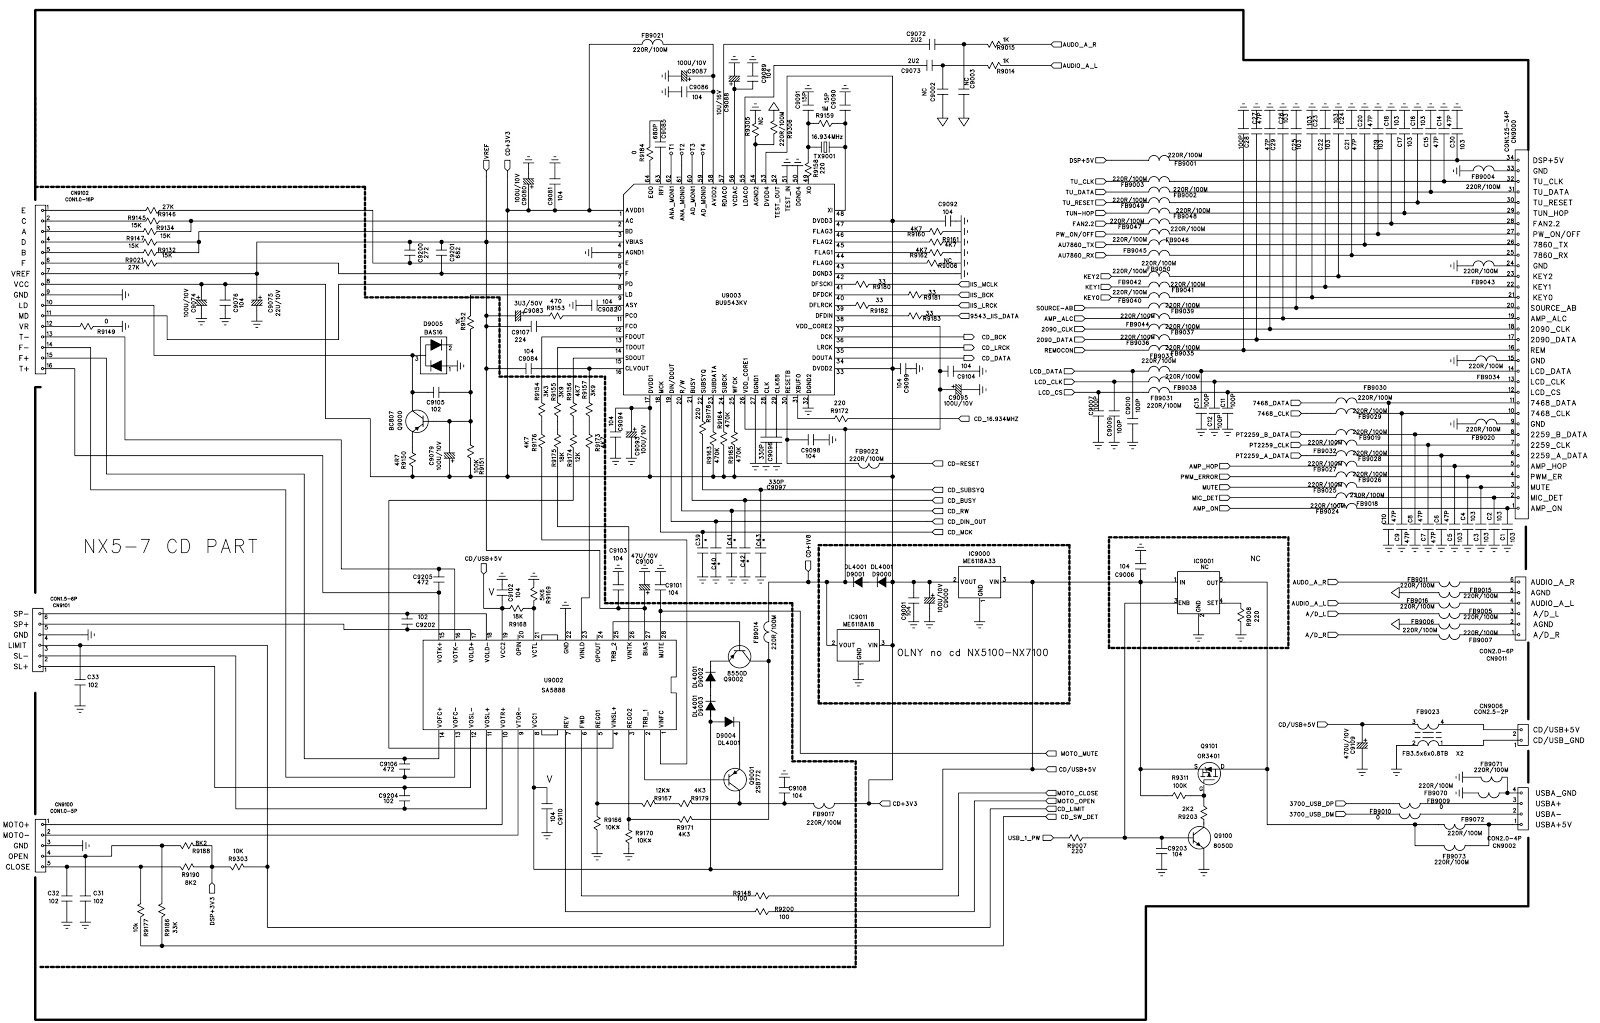 [QMVU_8575]  Television Circuit Board Diagram Diagram Base Website Board Diagram -  SASVENNDIAGRAM.ROUNDABIKE.IT | Fender Schematics Wiring Diagramscharvel Benedetto |  | Diagram Base Website Full Edition - roundabike